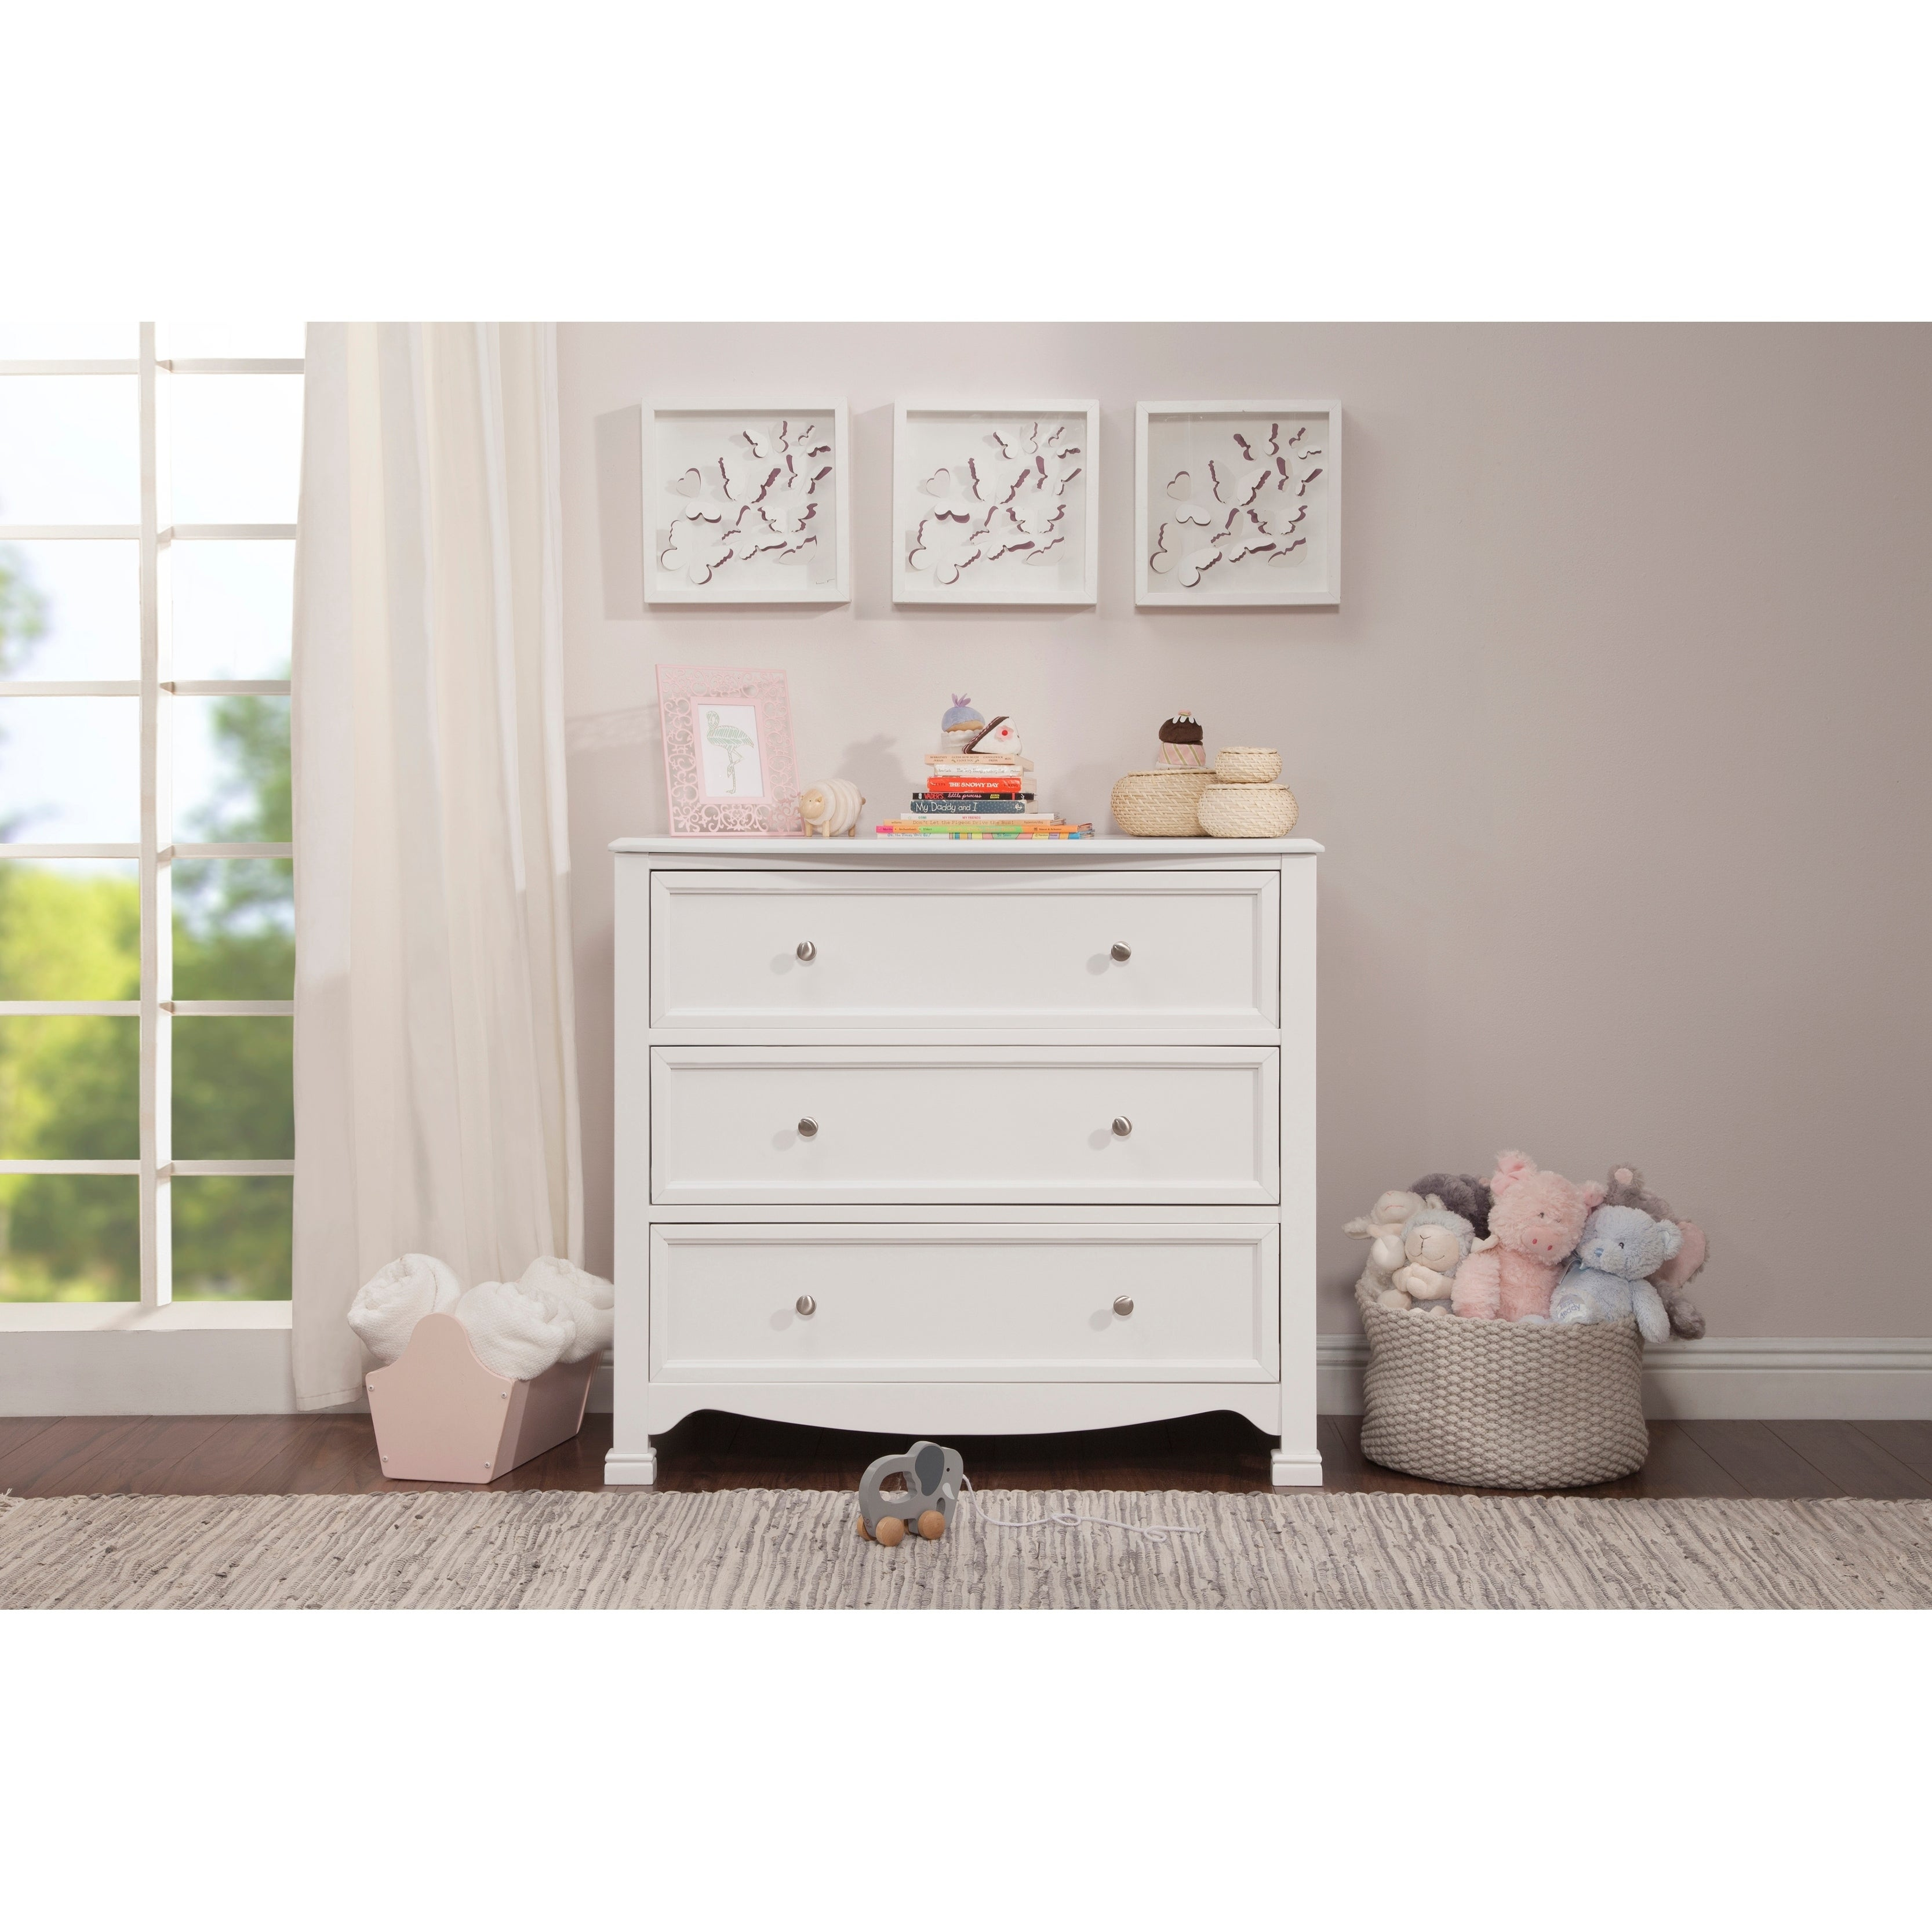 drawer white children garden home product today delta wood drawers shipping free dresser overstock